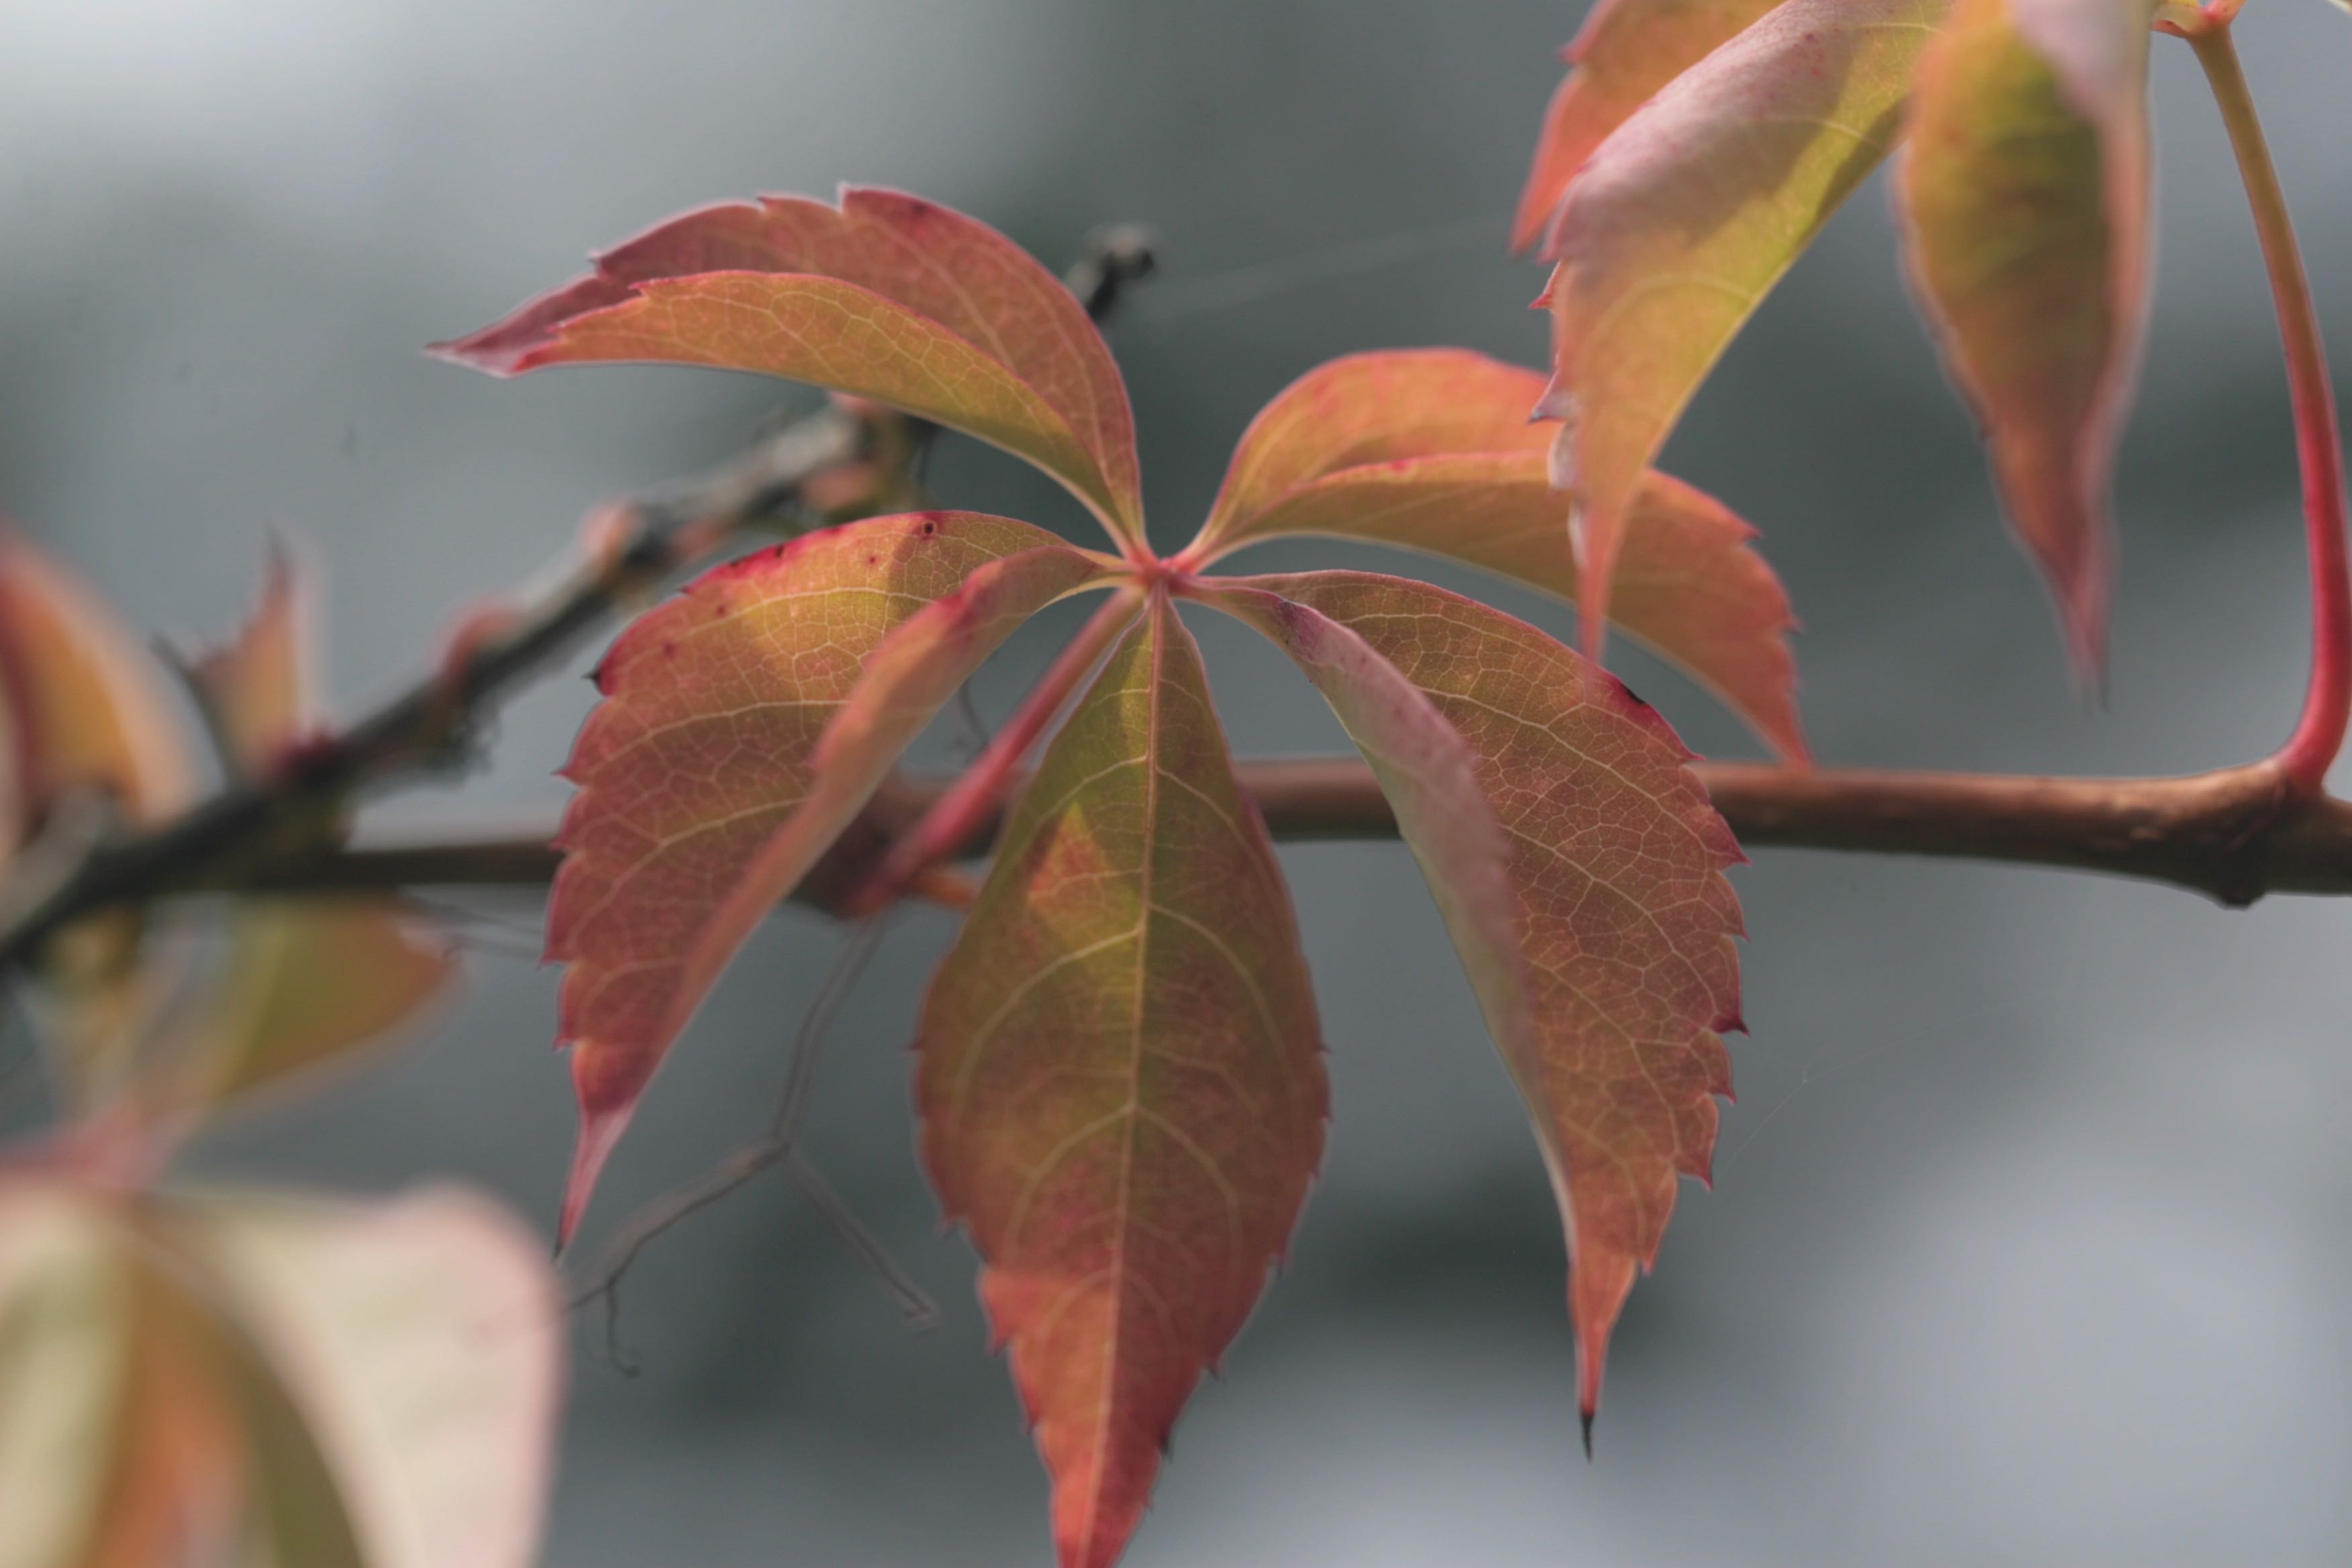 The Scientific Name is Parthenocissus quinquefolia. You will likely hear them called Virginia Creeper. This picture shows the This leaf is just beginning to show its Fall colors. of Parthenocissus quinquefolia